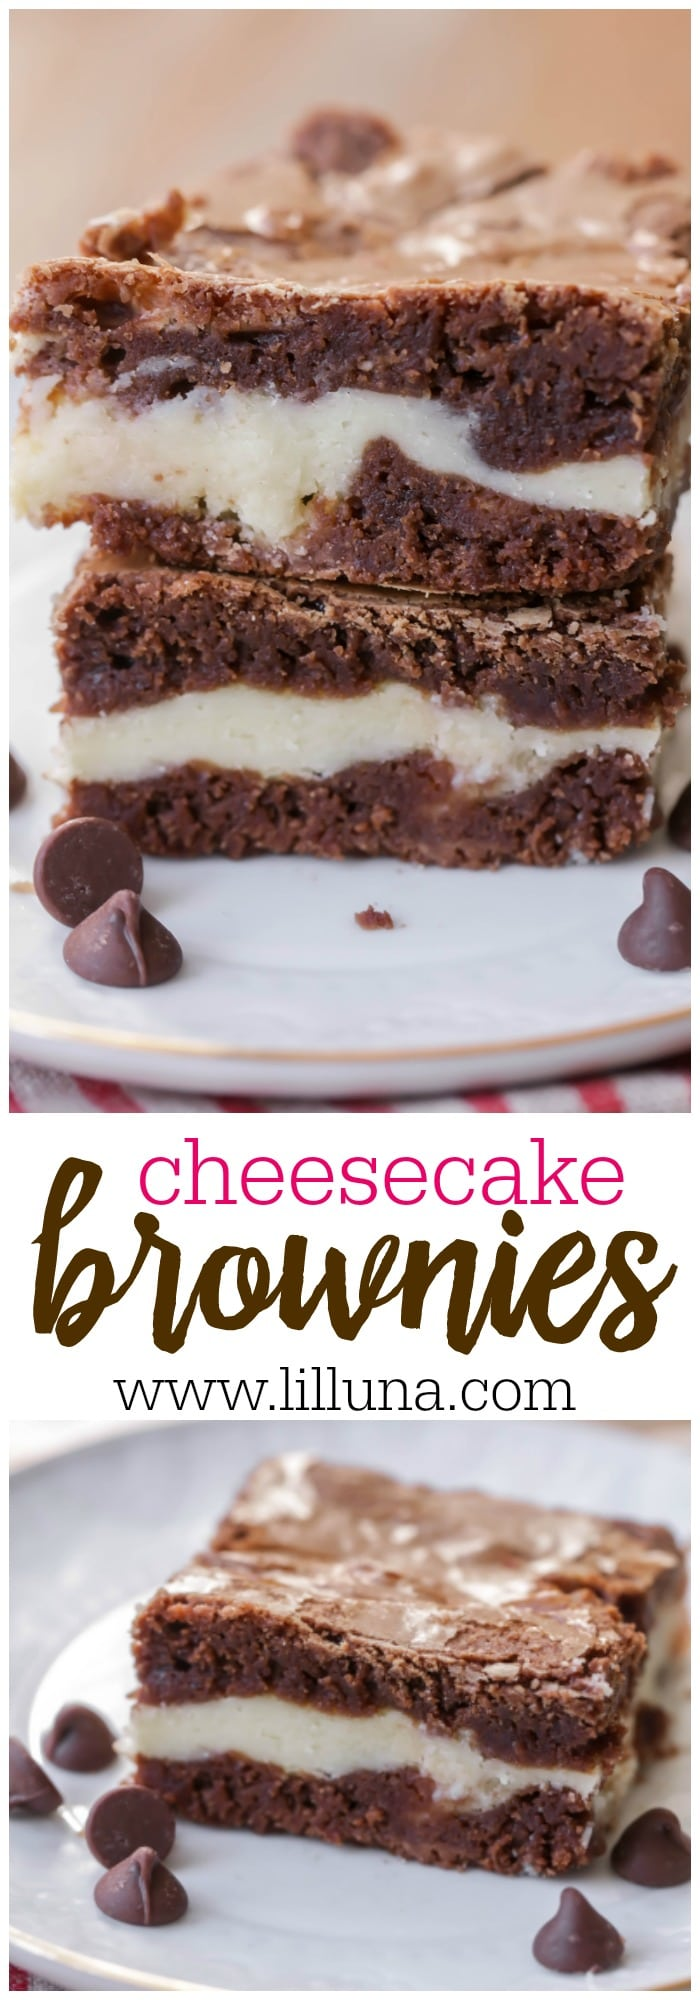 AMAZING Cheesecake Brownies - a delicious brownie dessert filled with a layer of cheesecake and baked to perfection.